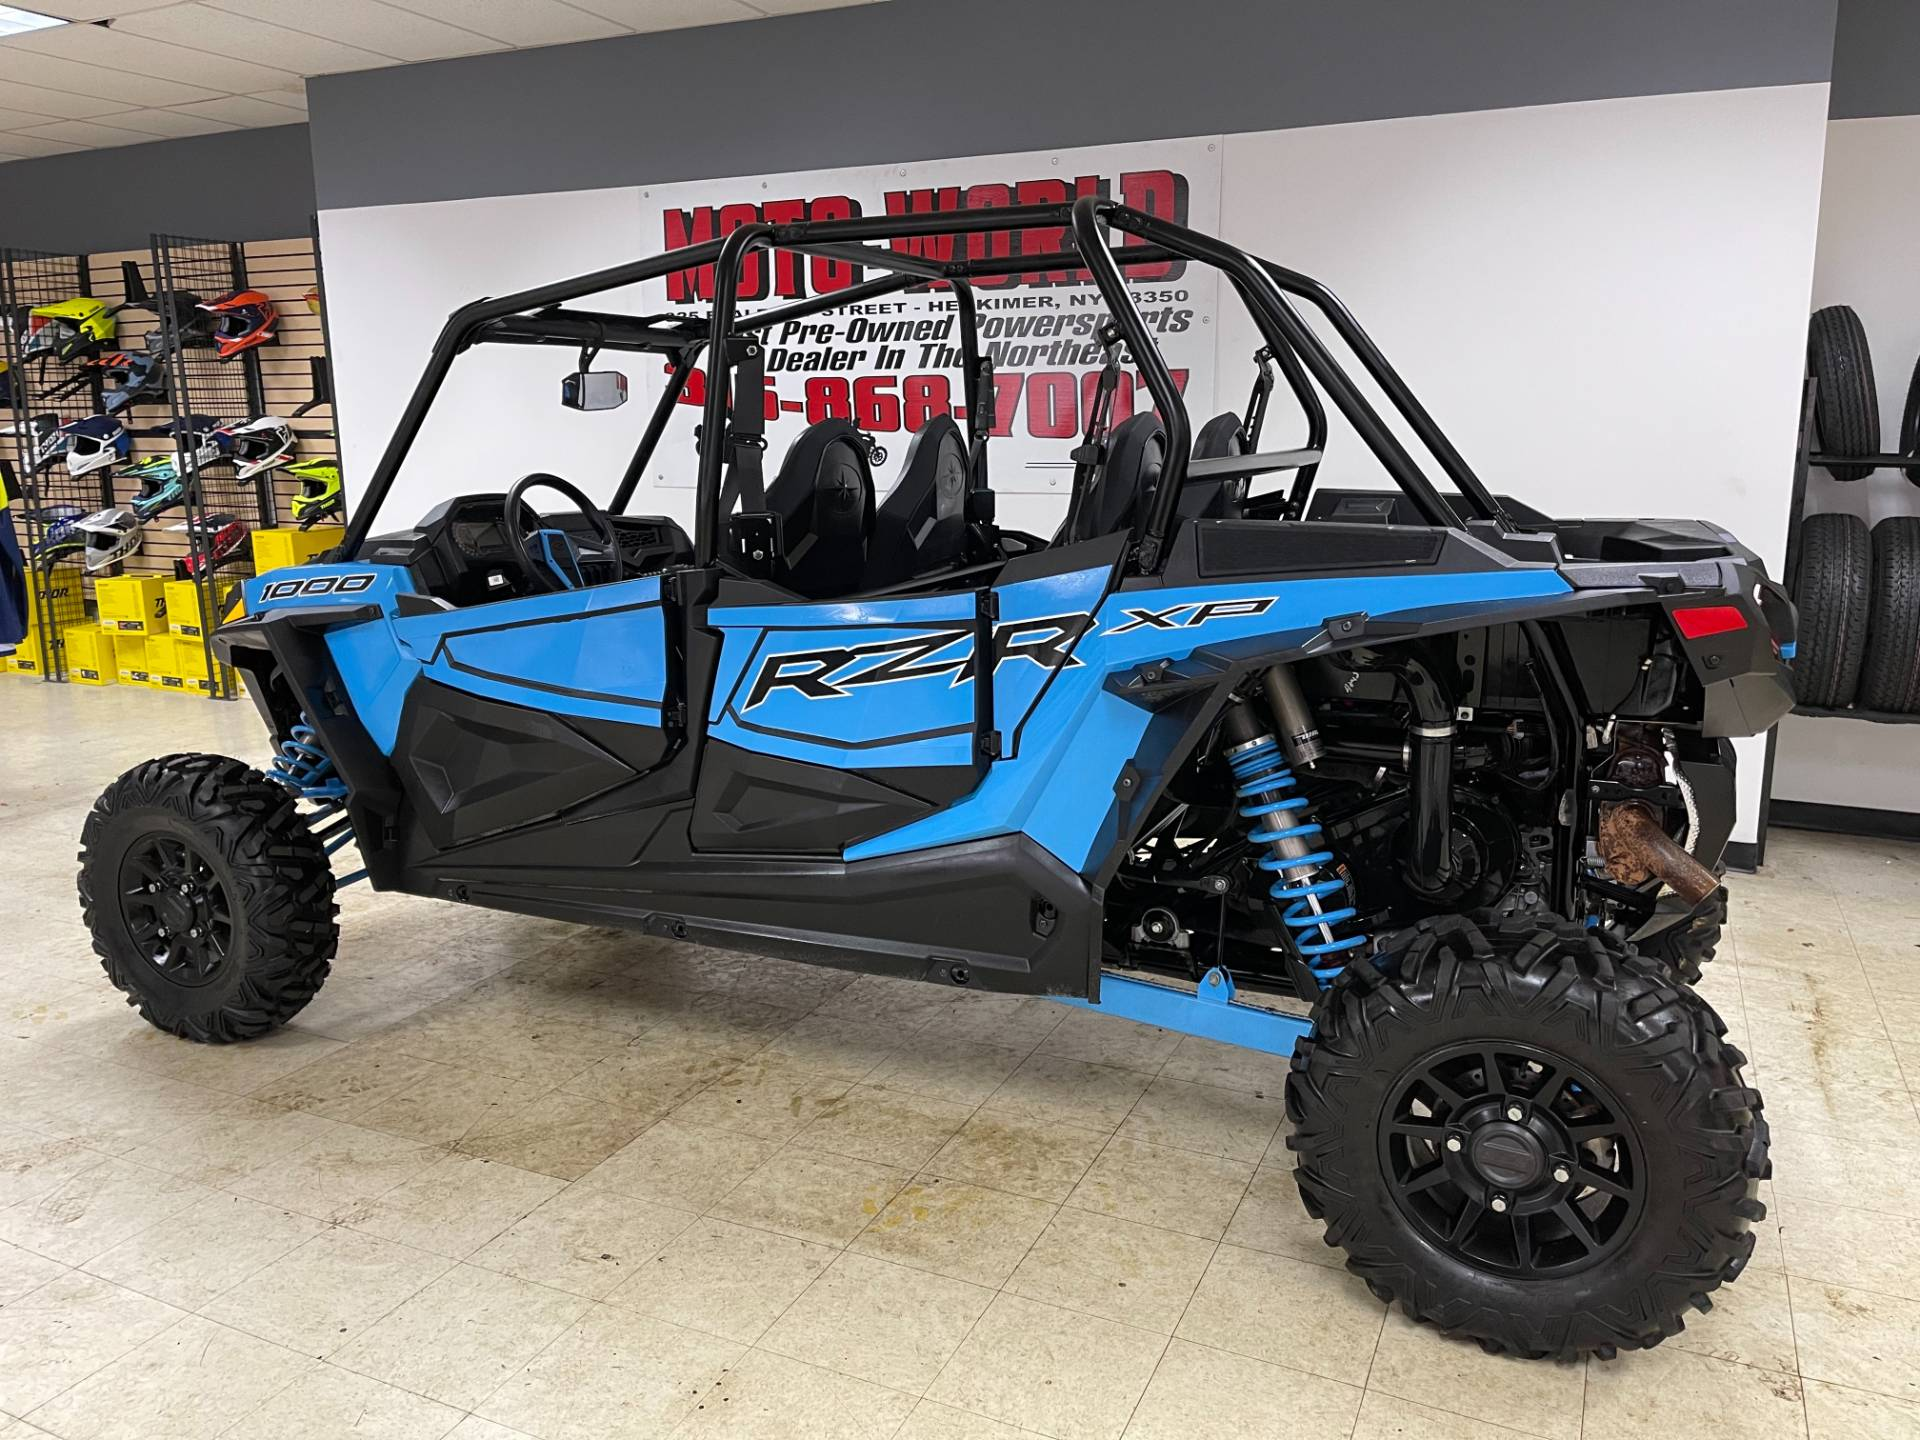 2020 Polaris RZR XP 4 1000 in Herkimer, New York - Photo 3